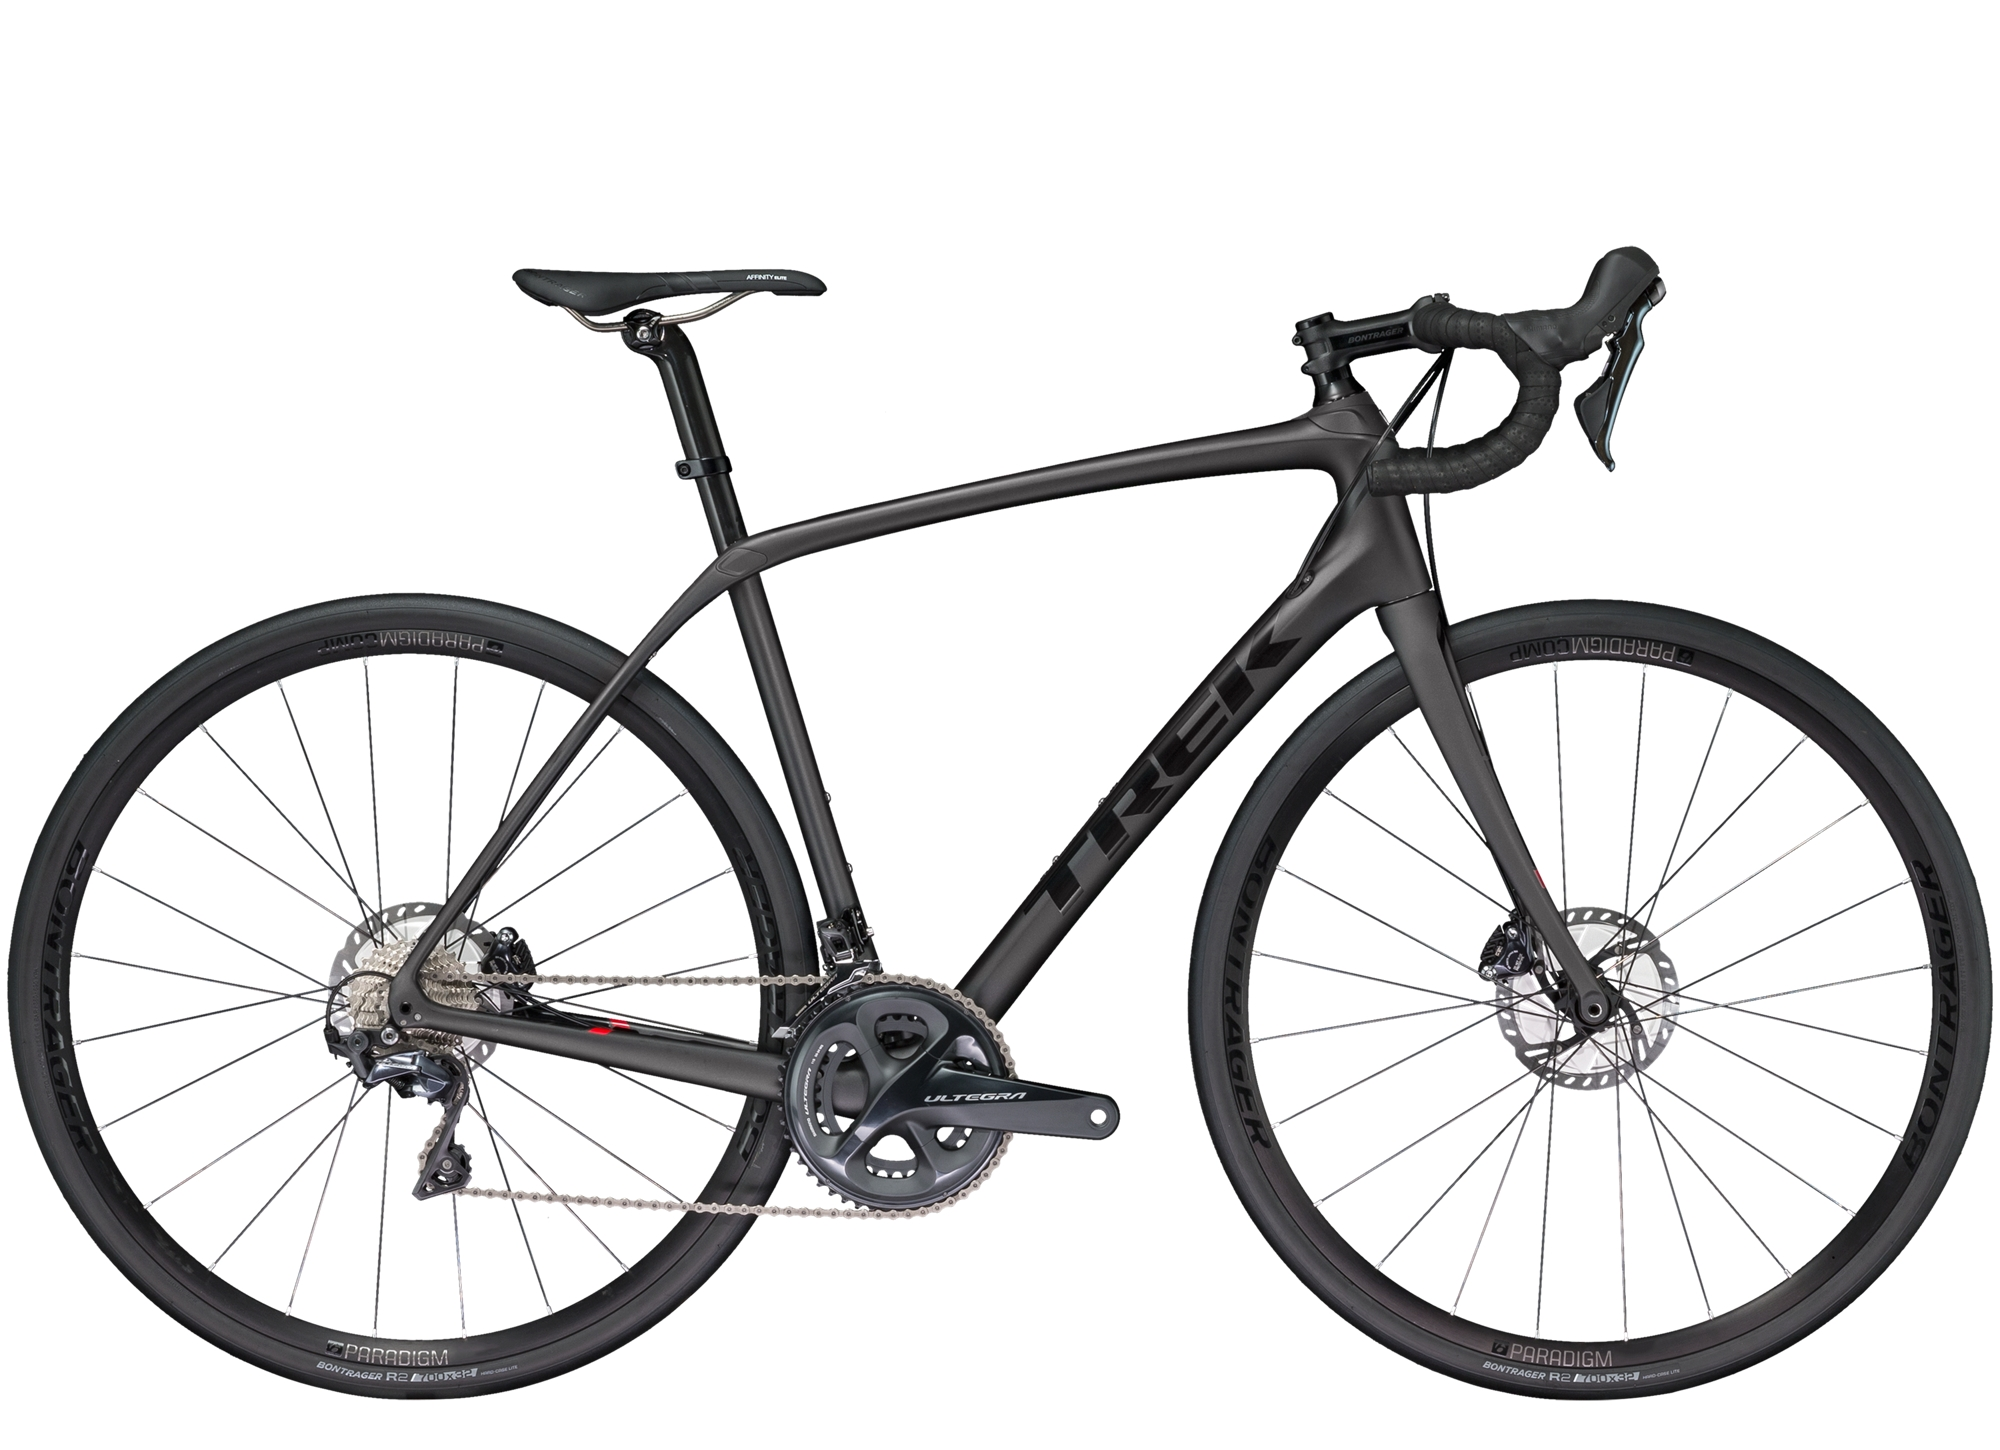 https://trek.scene7.com/is/image/TrekBicycleProducts/1462000_2018_A_1_Domane_SL_6_Disc?wid=2000